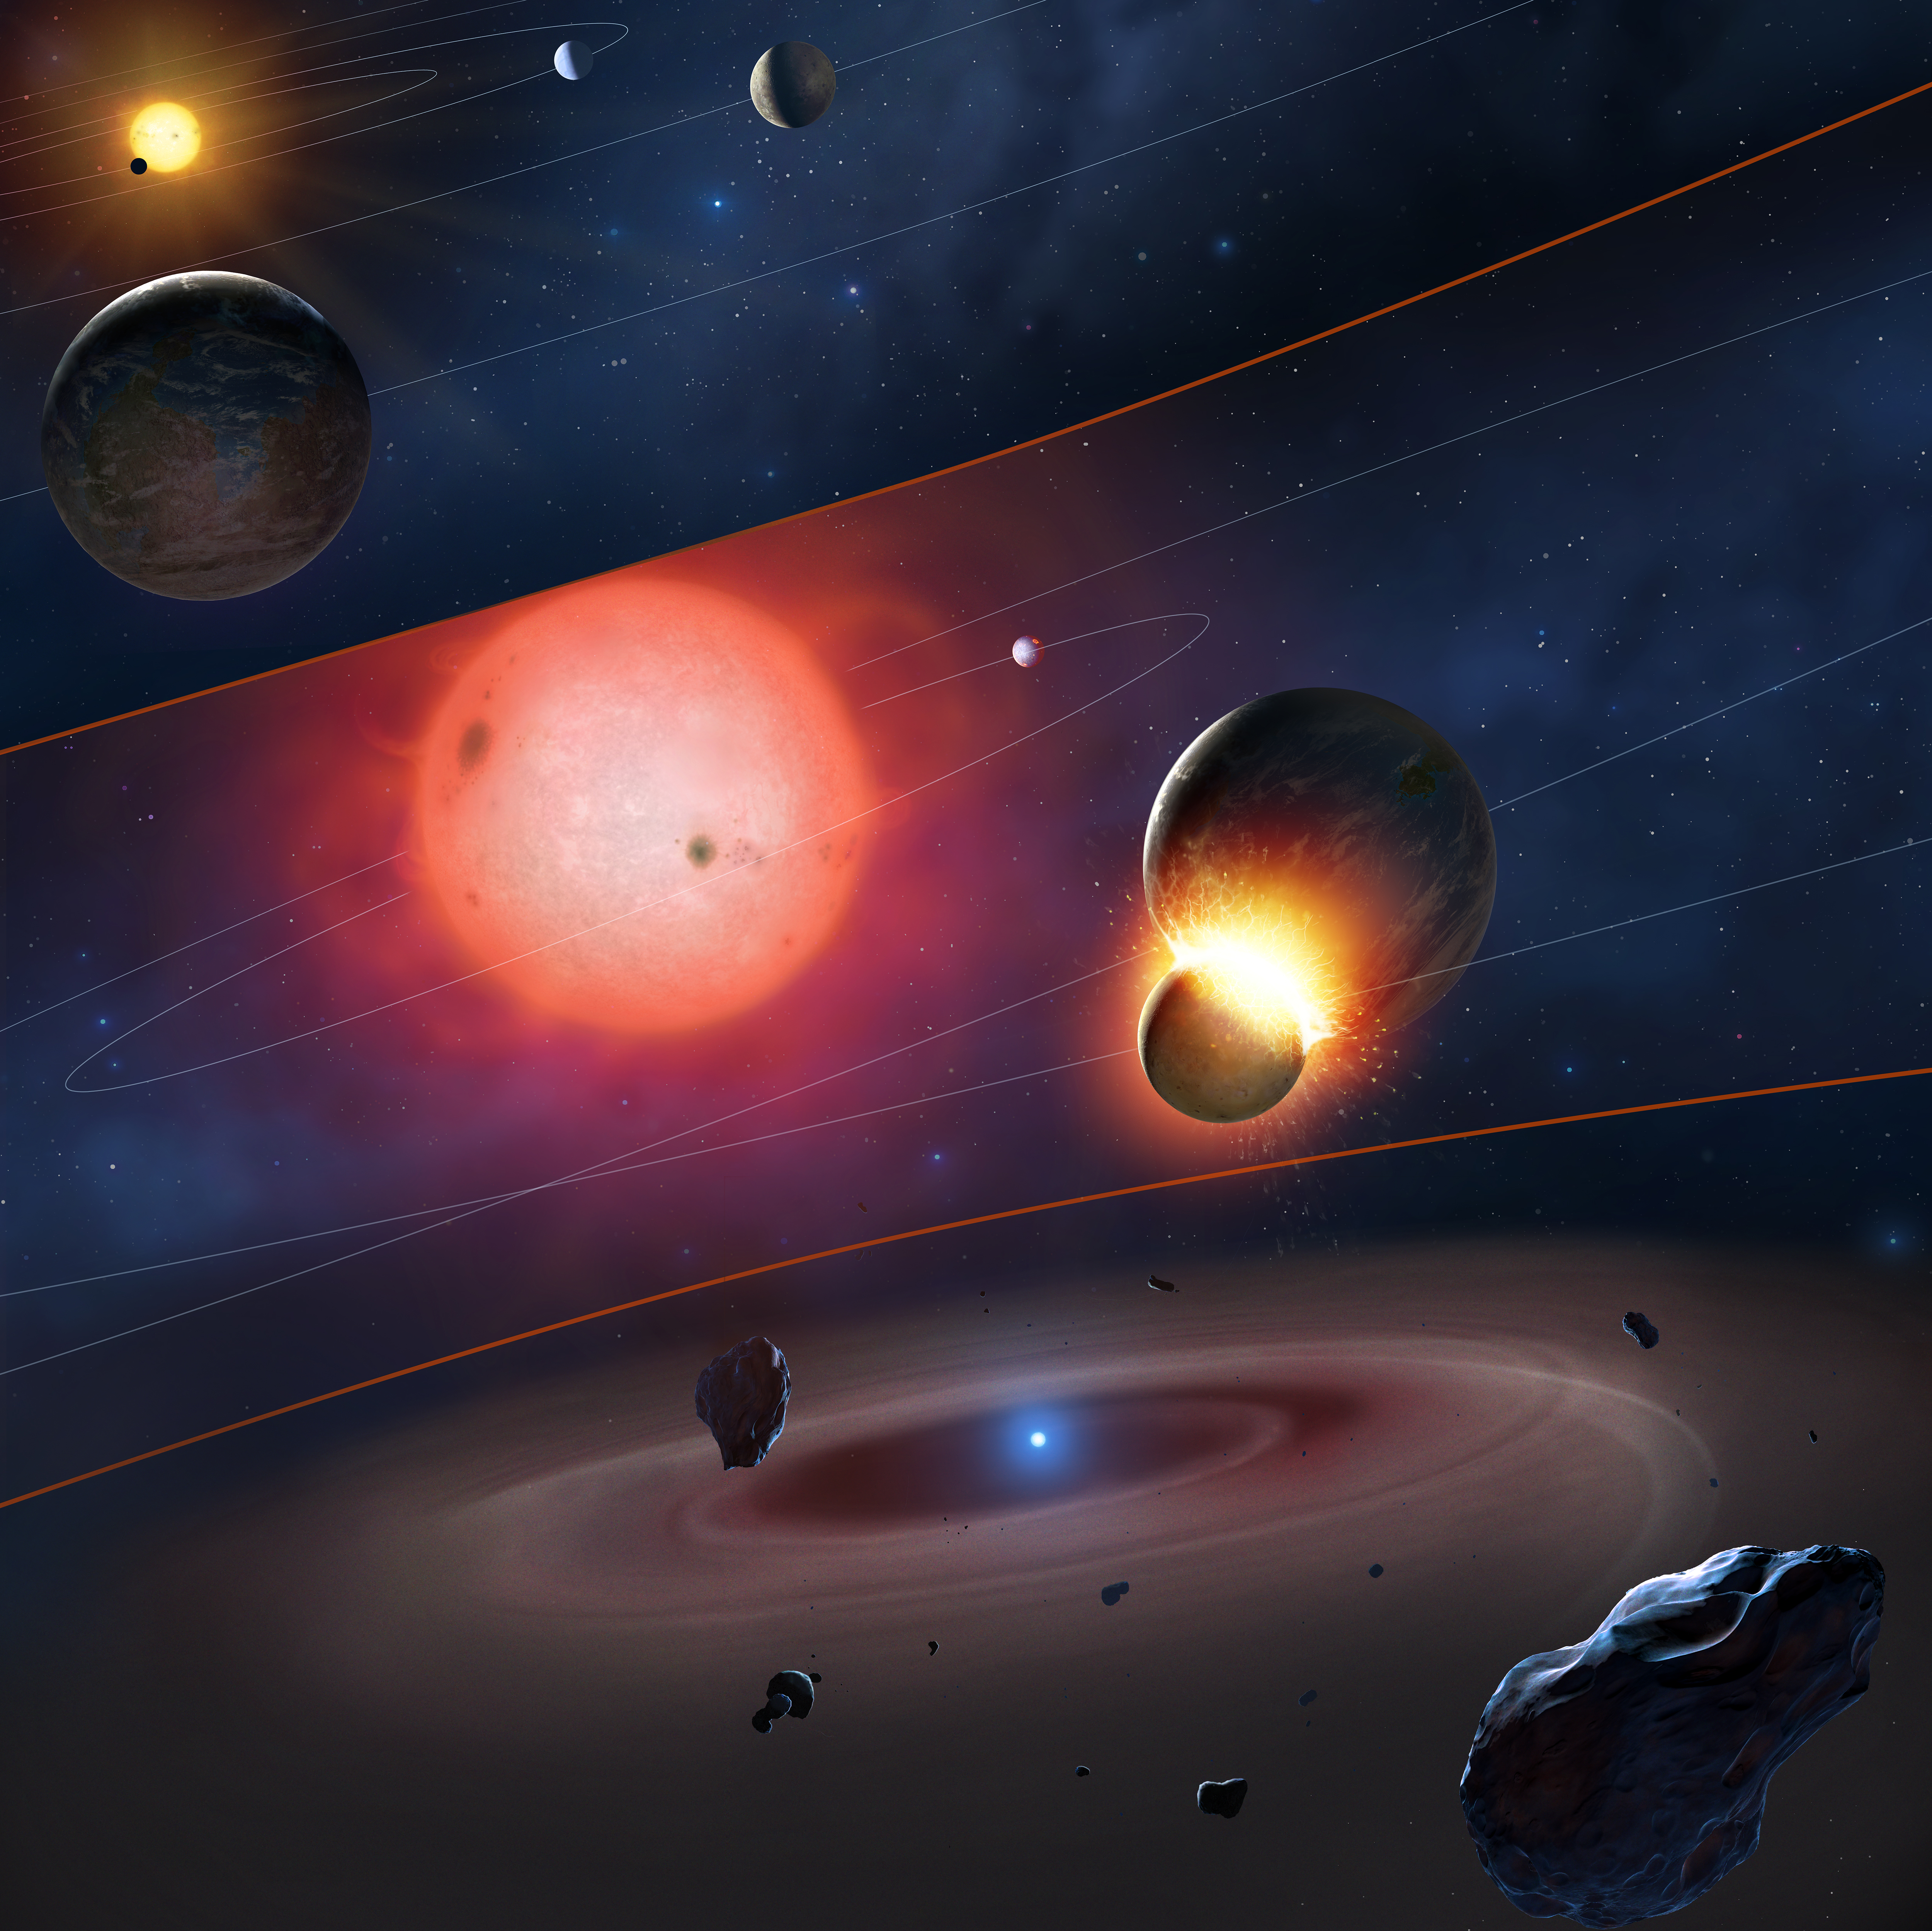 Solar System S Death Glimpsed In White Dwarf Stars Wired